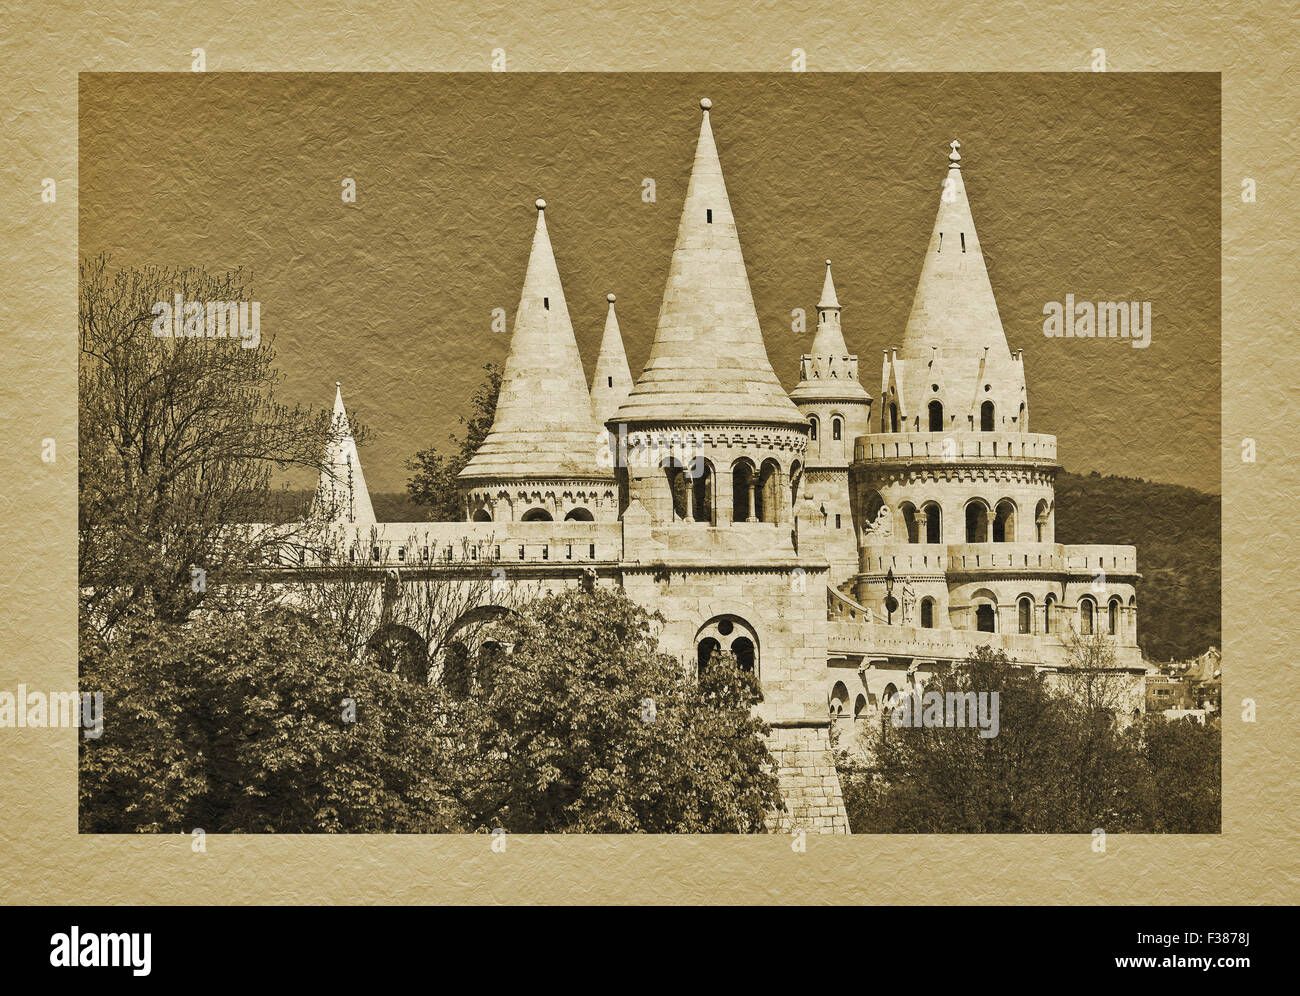 View to Fishermens Bastion, built from 1895 to 1902 by Frigyes Schulek, Budapest, Hungary, Europe - Stock Image